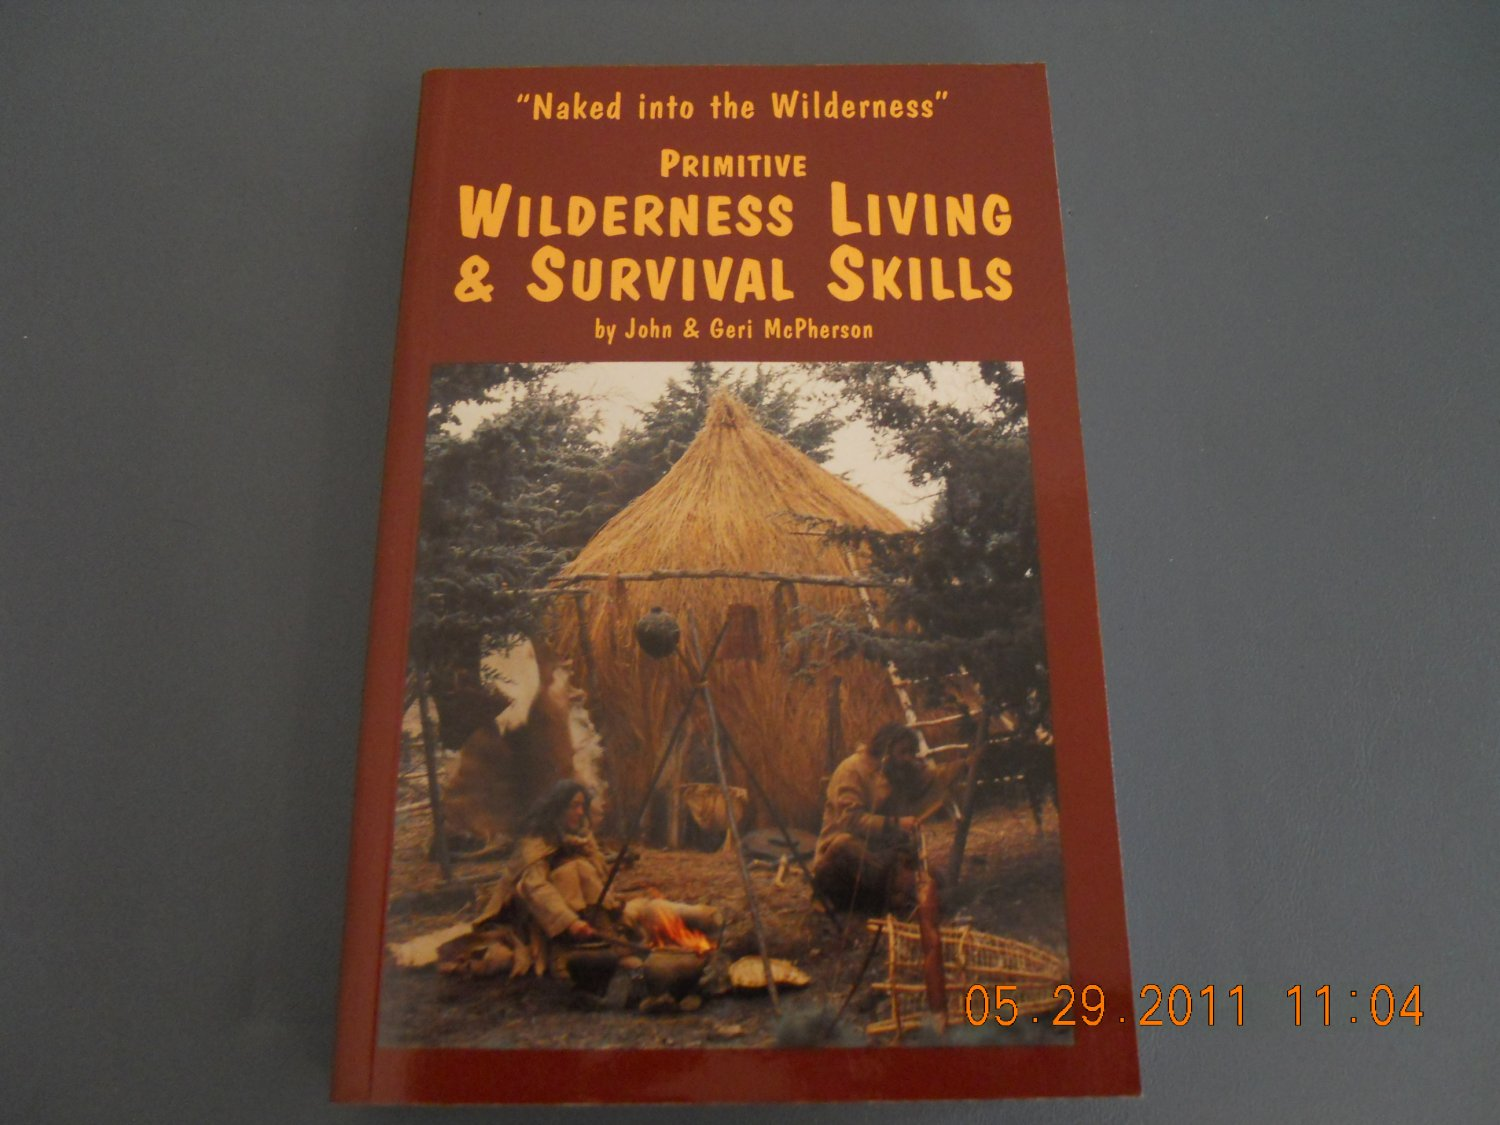 Primitive Wilderness Living & Survival Skills Naked into the Wilderness paperback